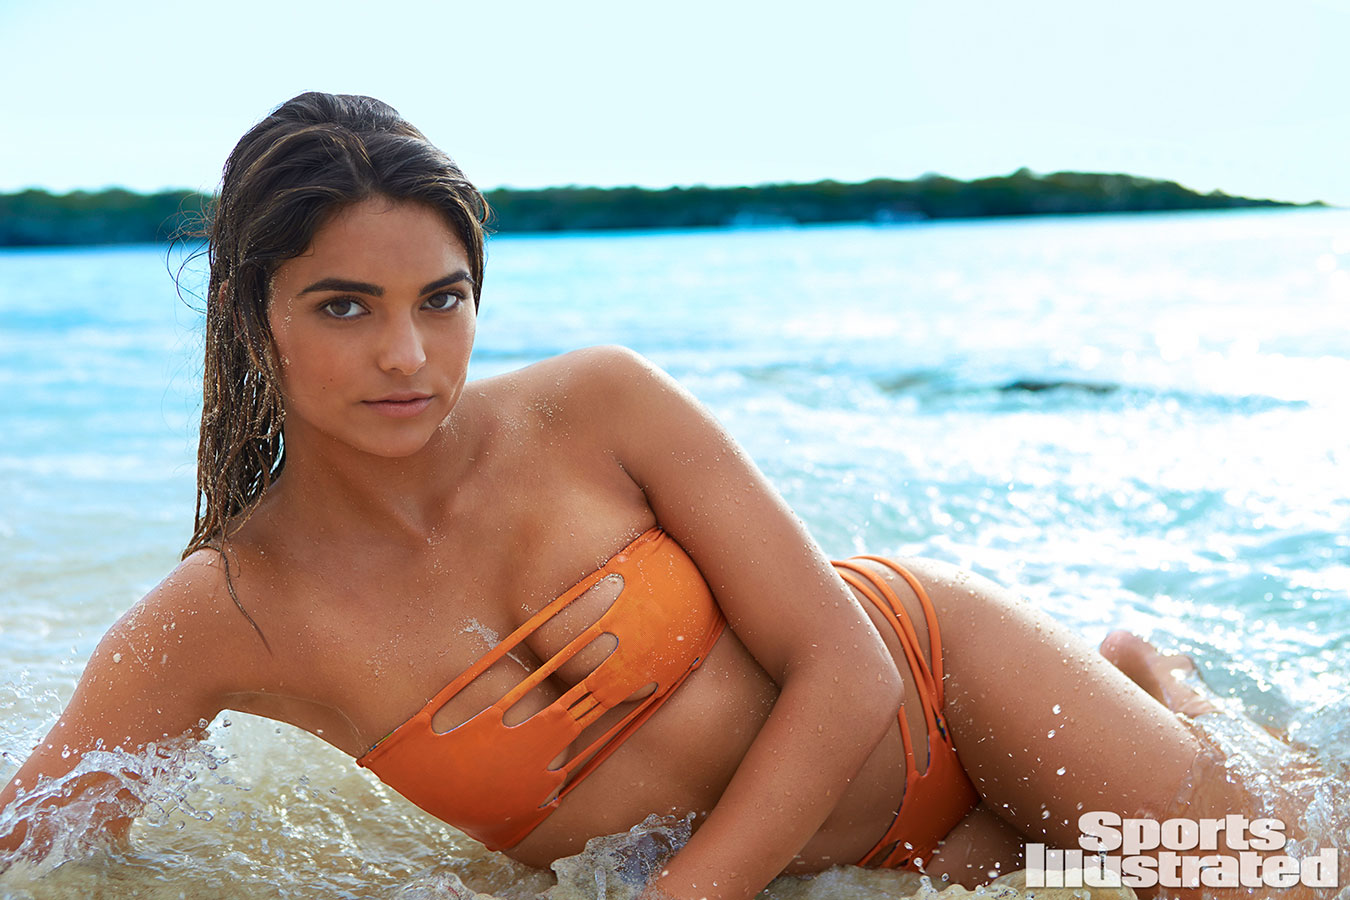 Sports Illustrated Swimsuit Model Nude 93